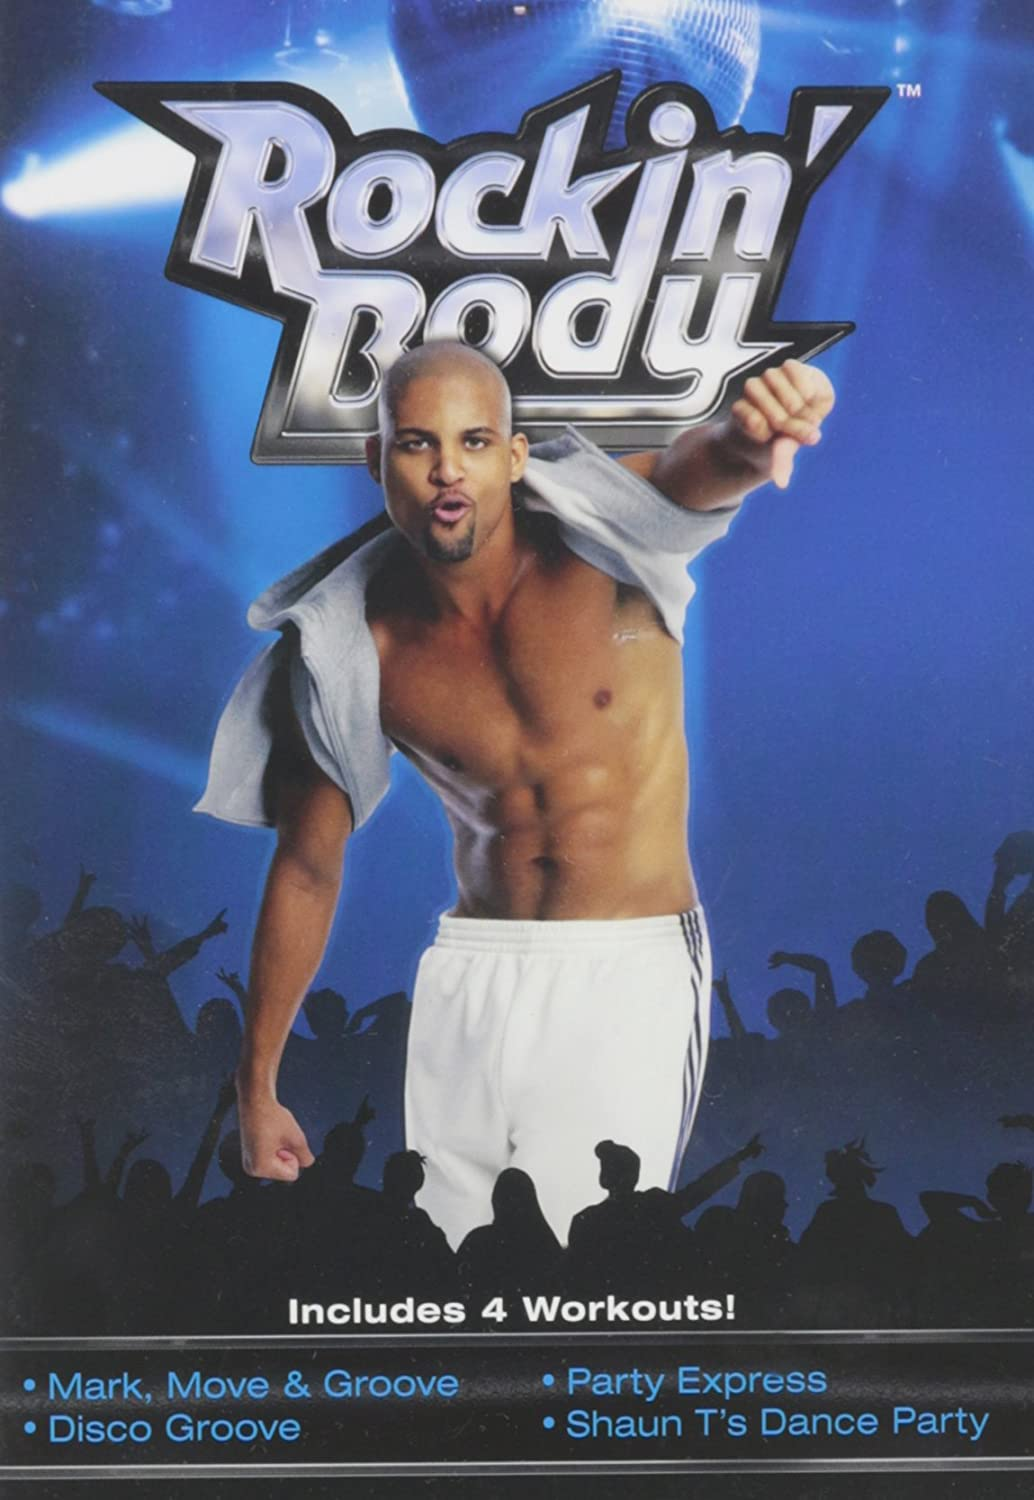 Amazon.com : Shaun T's Rockin' Body DVD Workout : Exercise And Fitness  Video Recordings : Sports & Outdoors